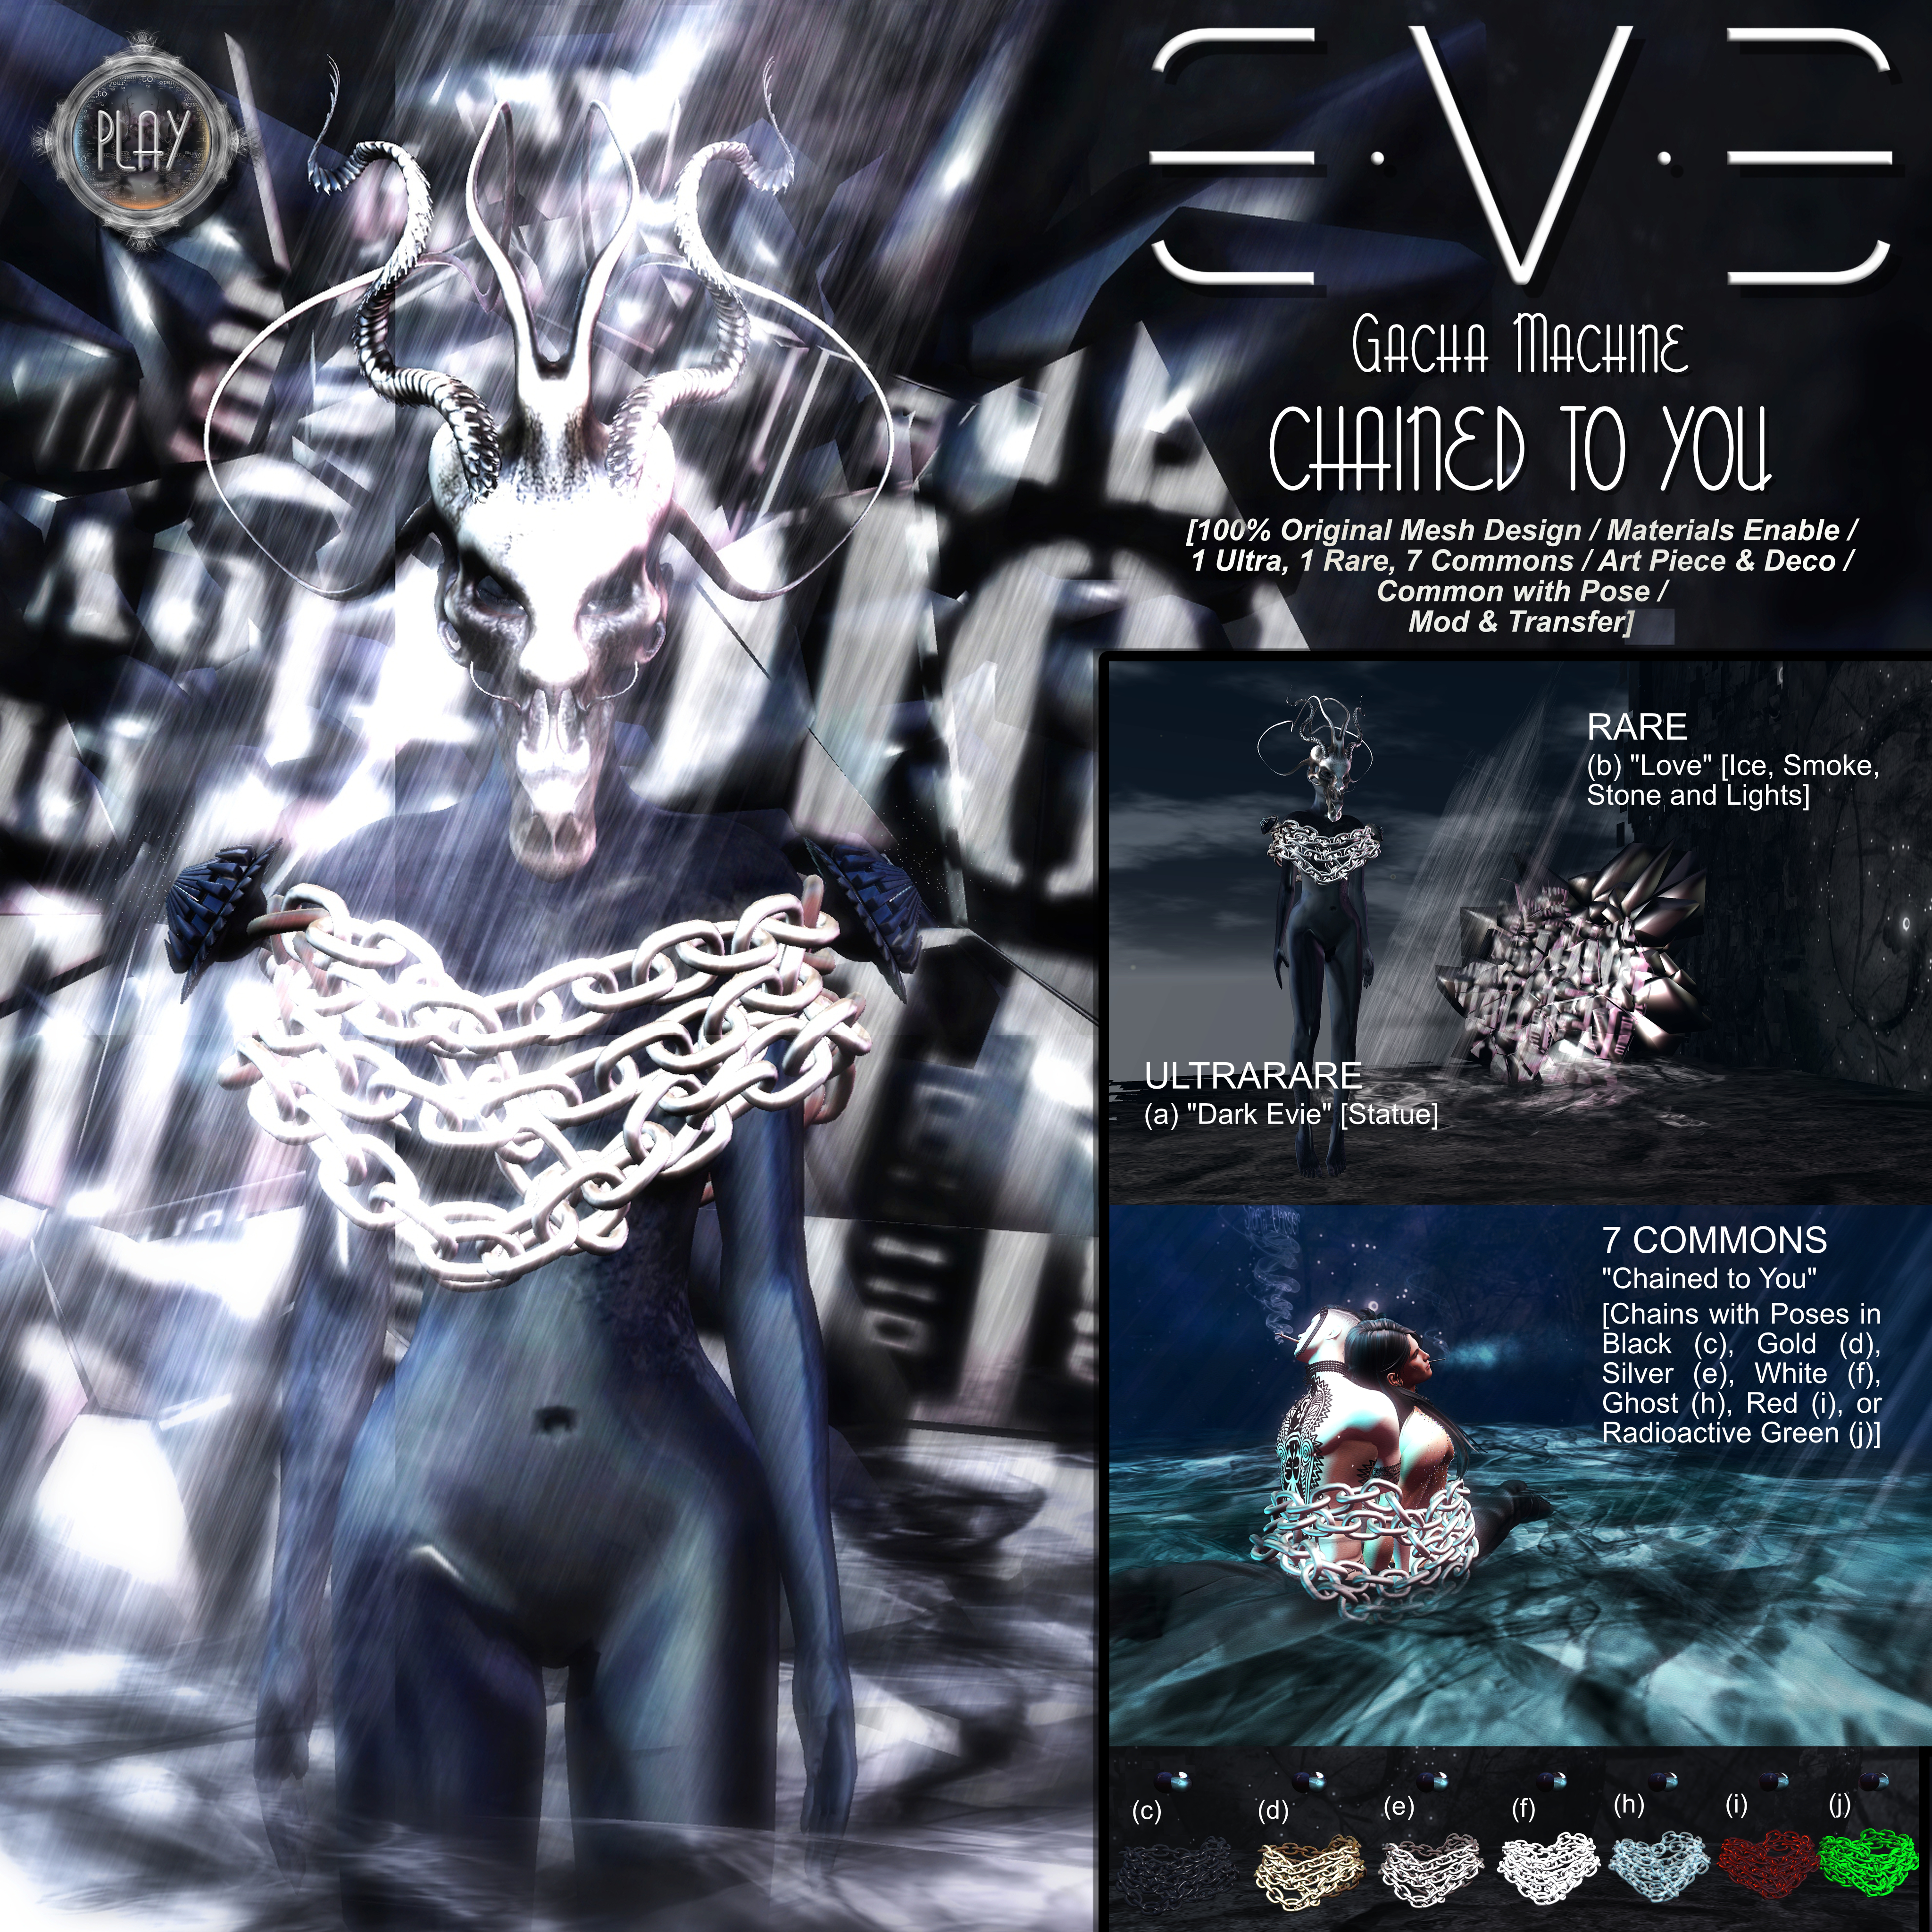 E.V.E Chained to You [info]